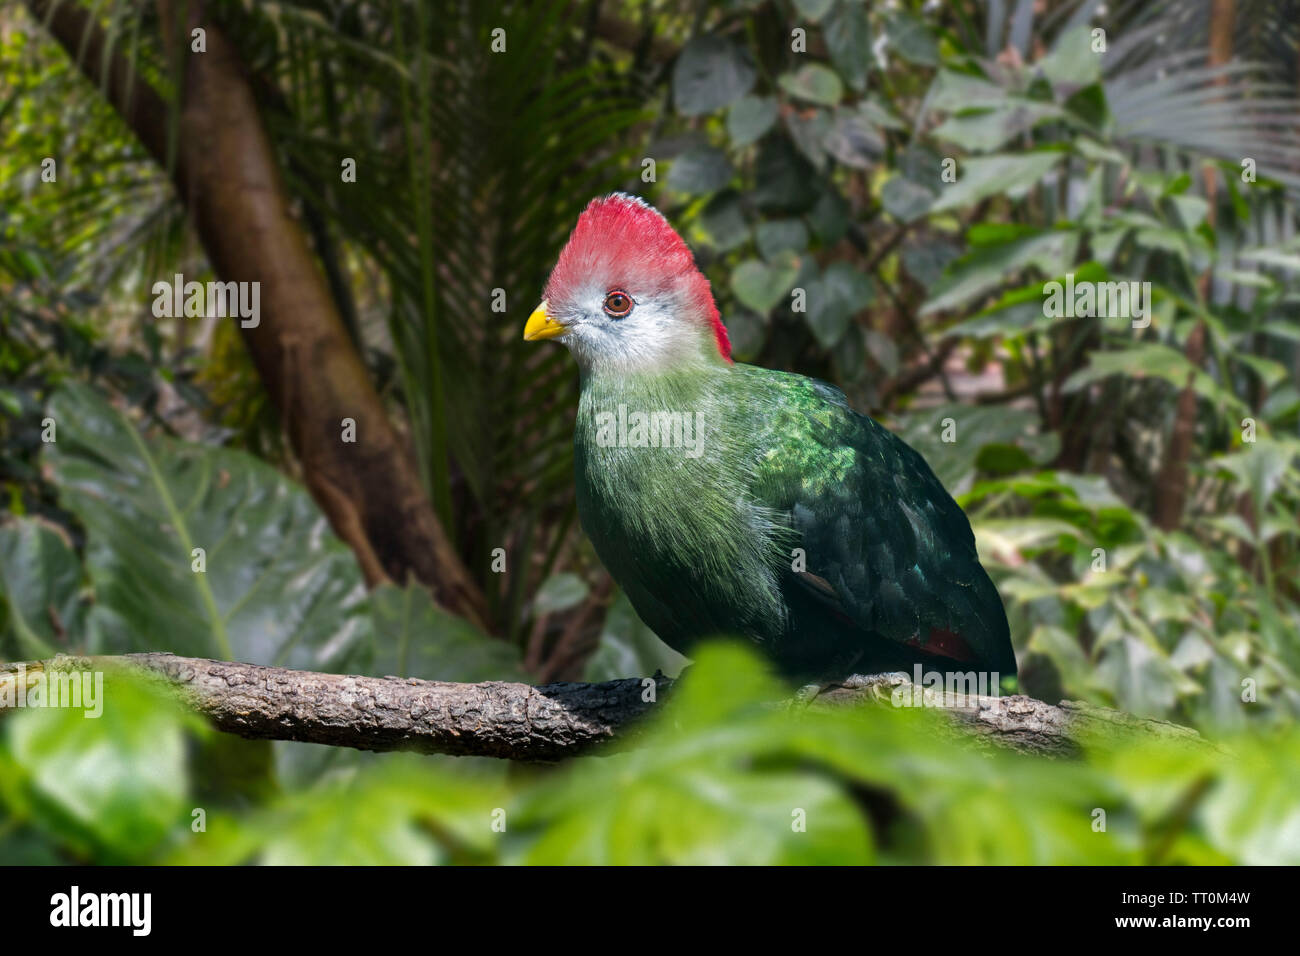 Red-crested turaco (Tauraco erythrolophus) perched in tree, frugivorous bird endemic to western Angola, Africa Stock Photo